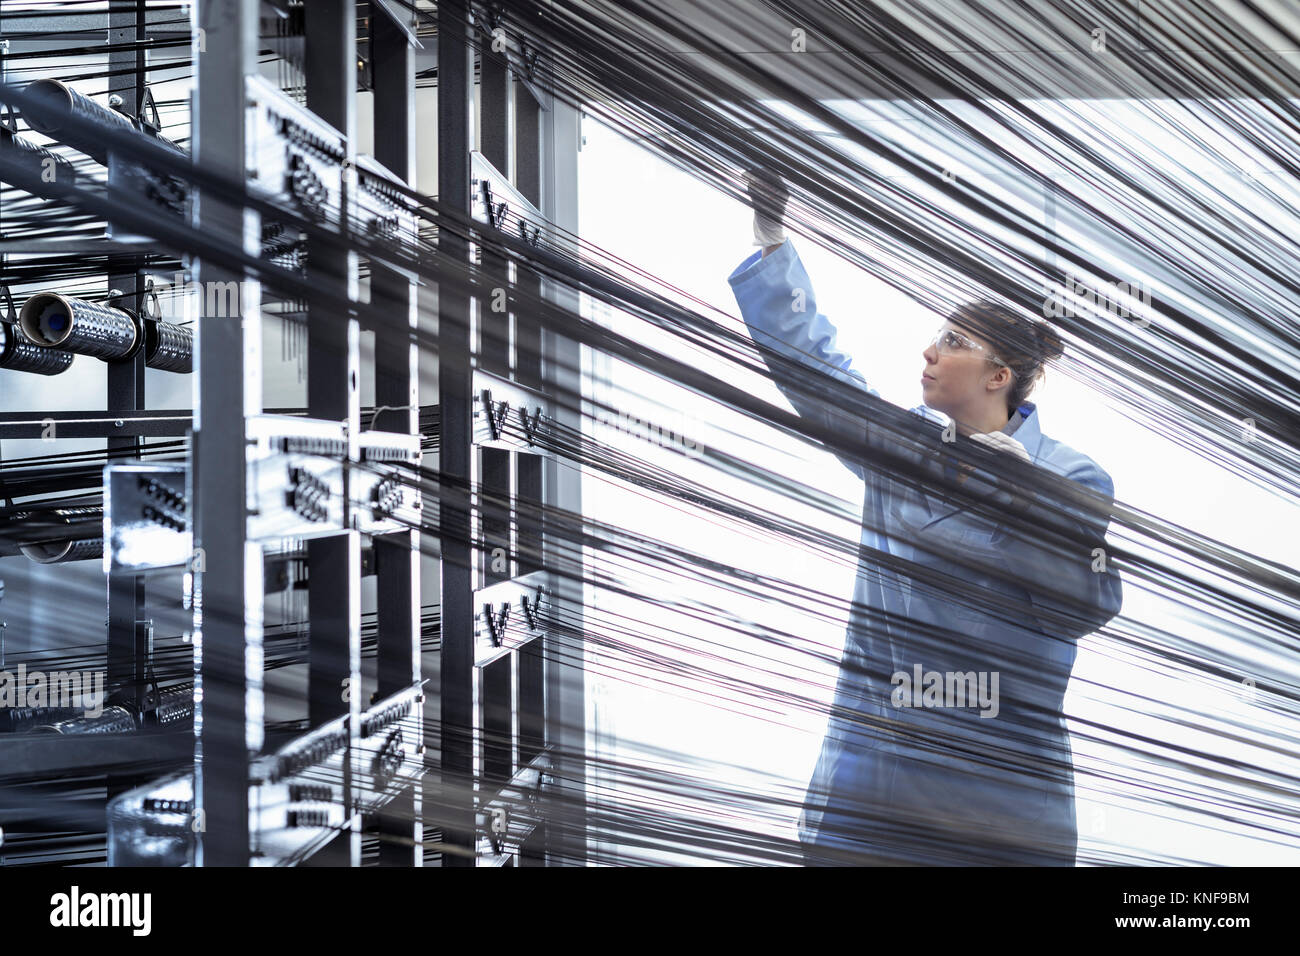 Female operator with carbon fibre thread on loom in carbon fibre production facility - Stock Image